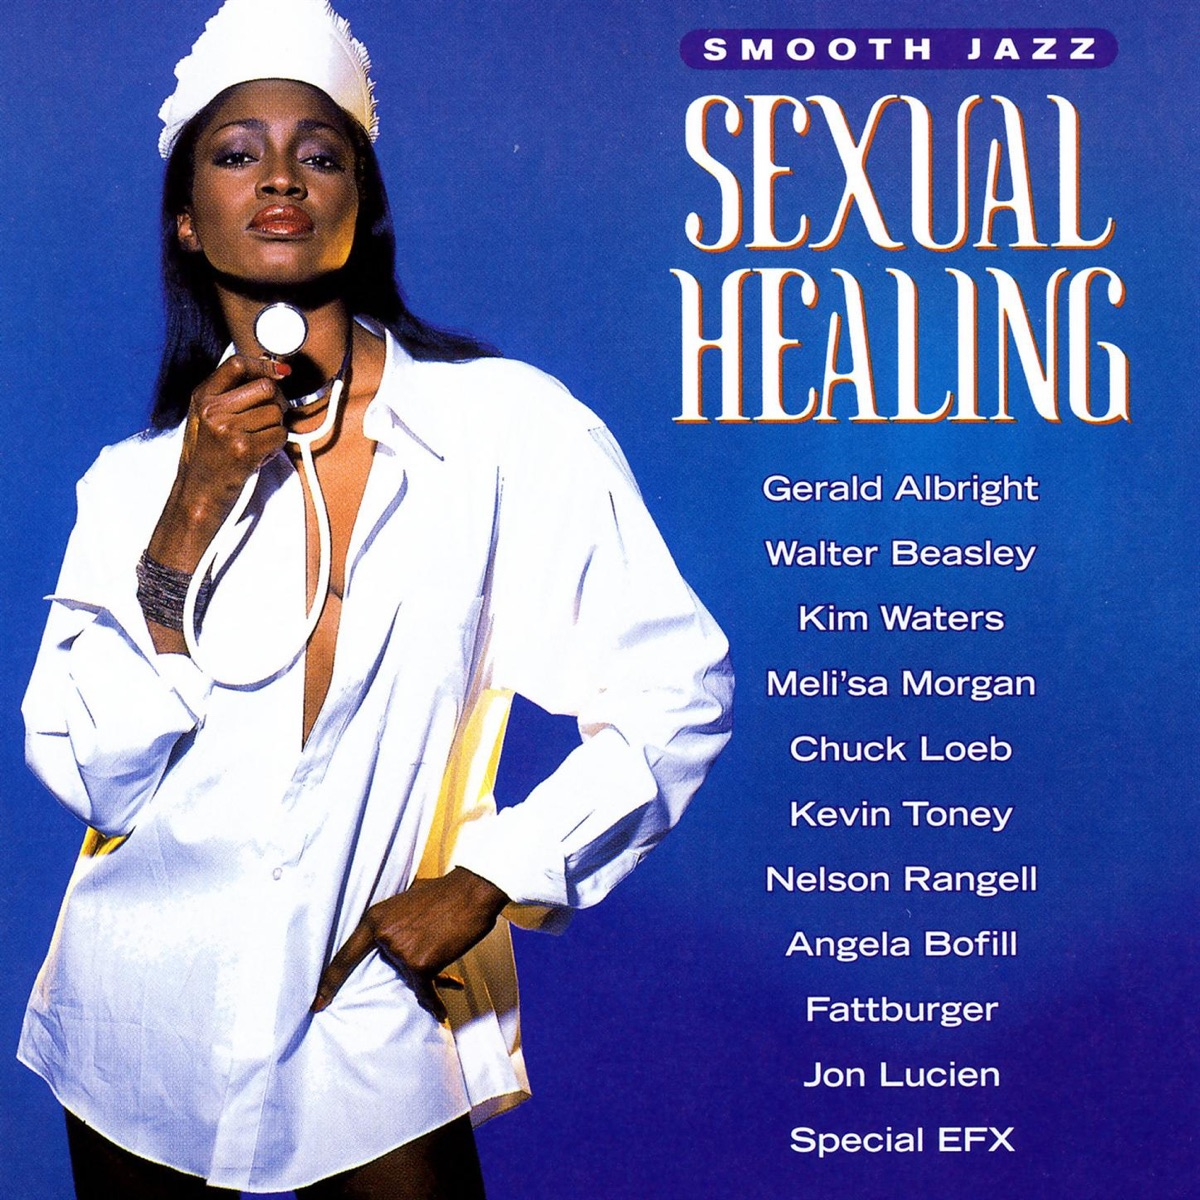 Sexual healing album version